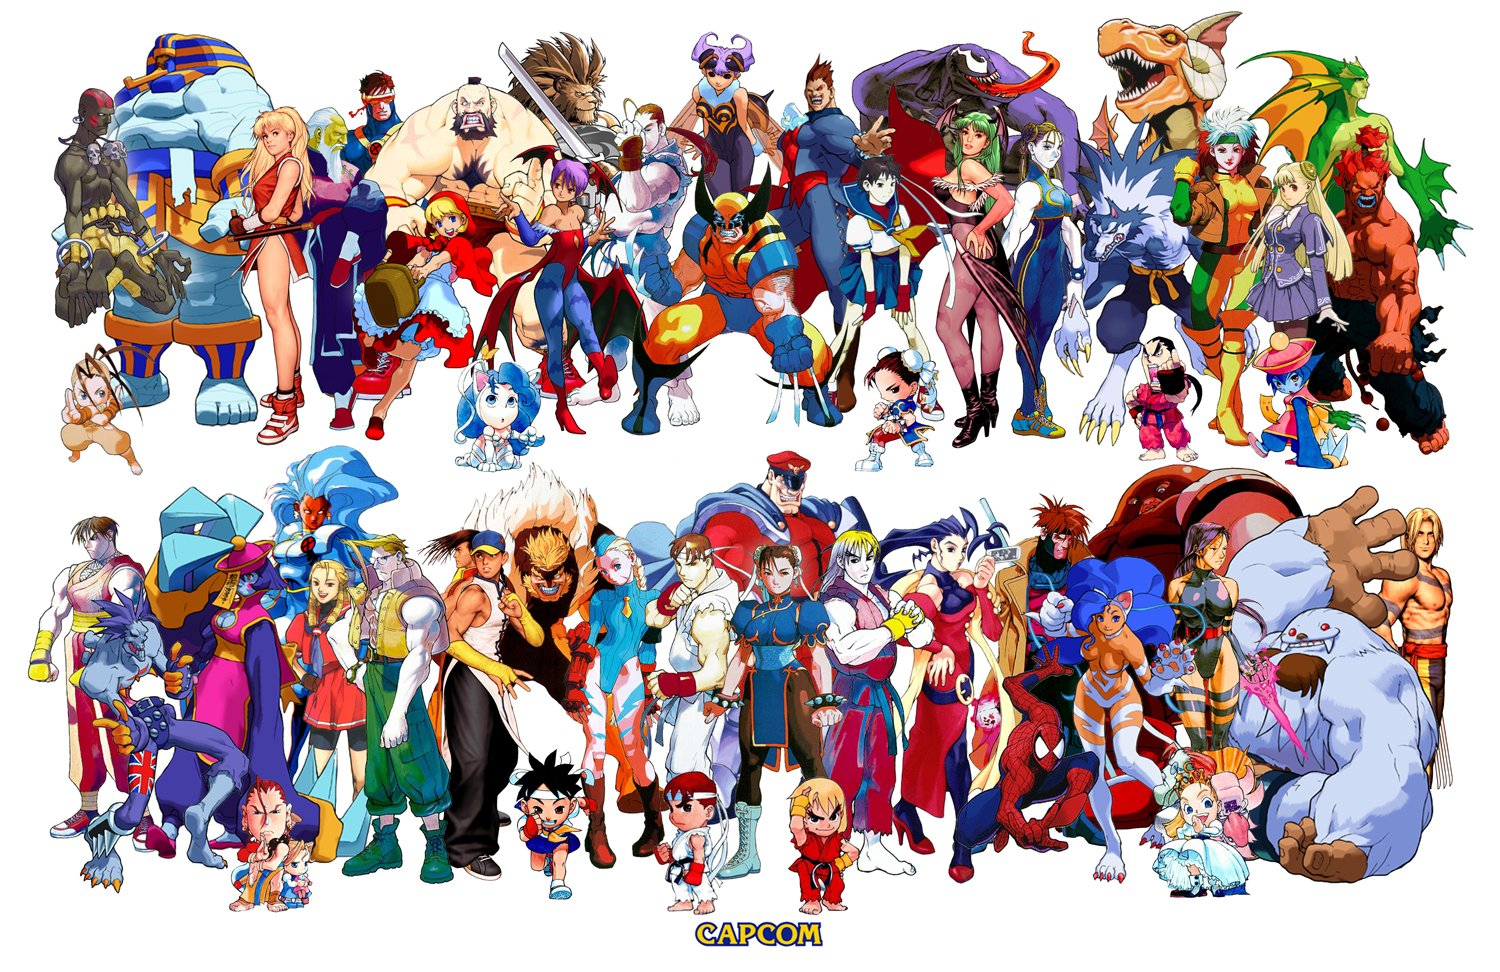 Series crossovers marvel vs capcom